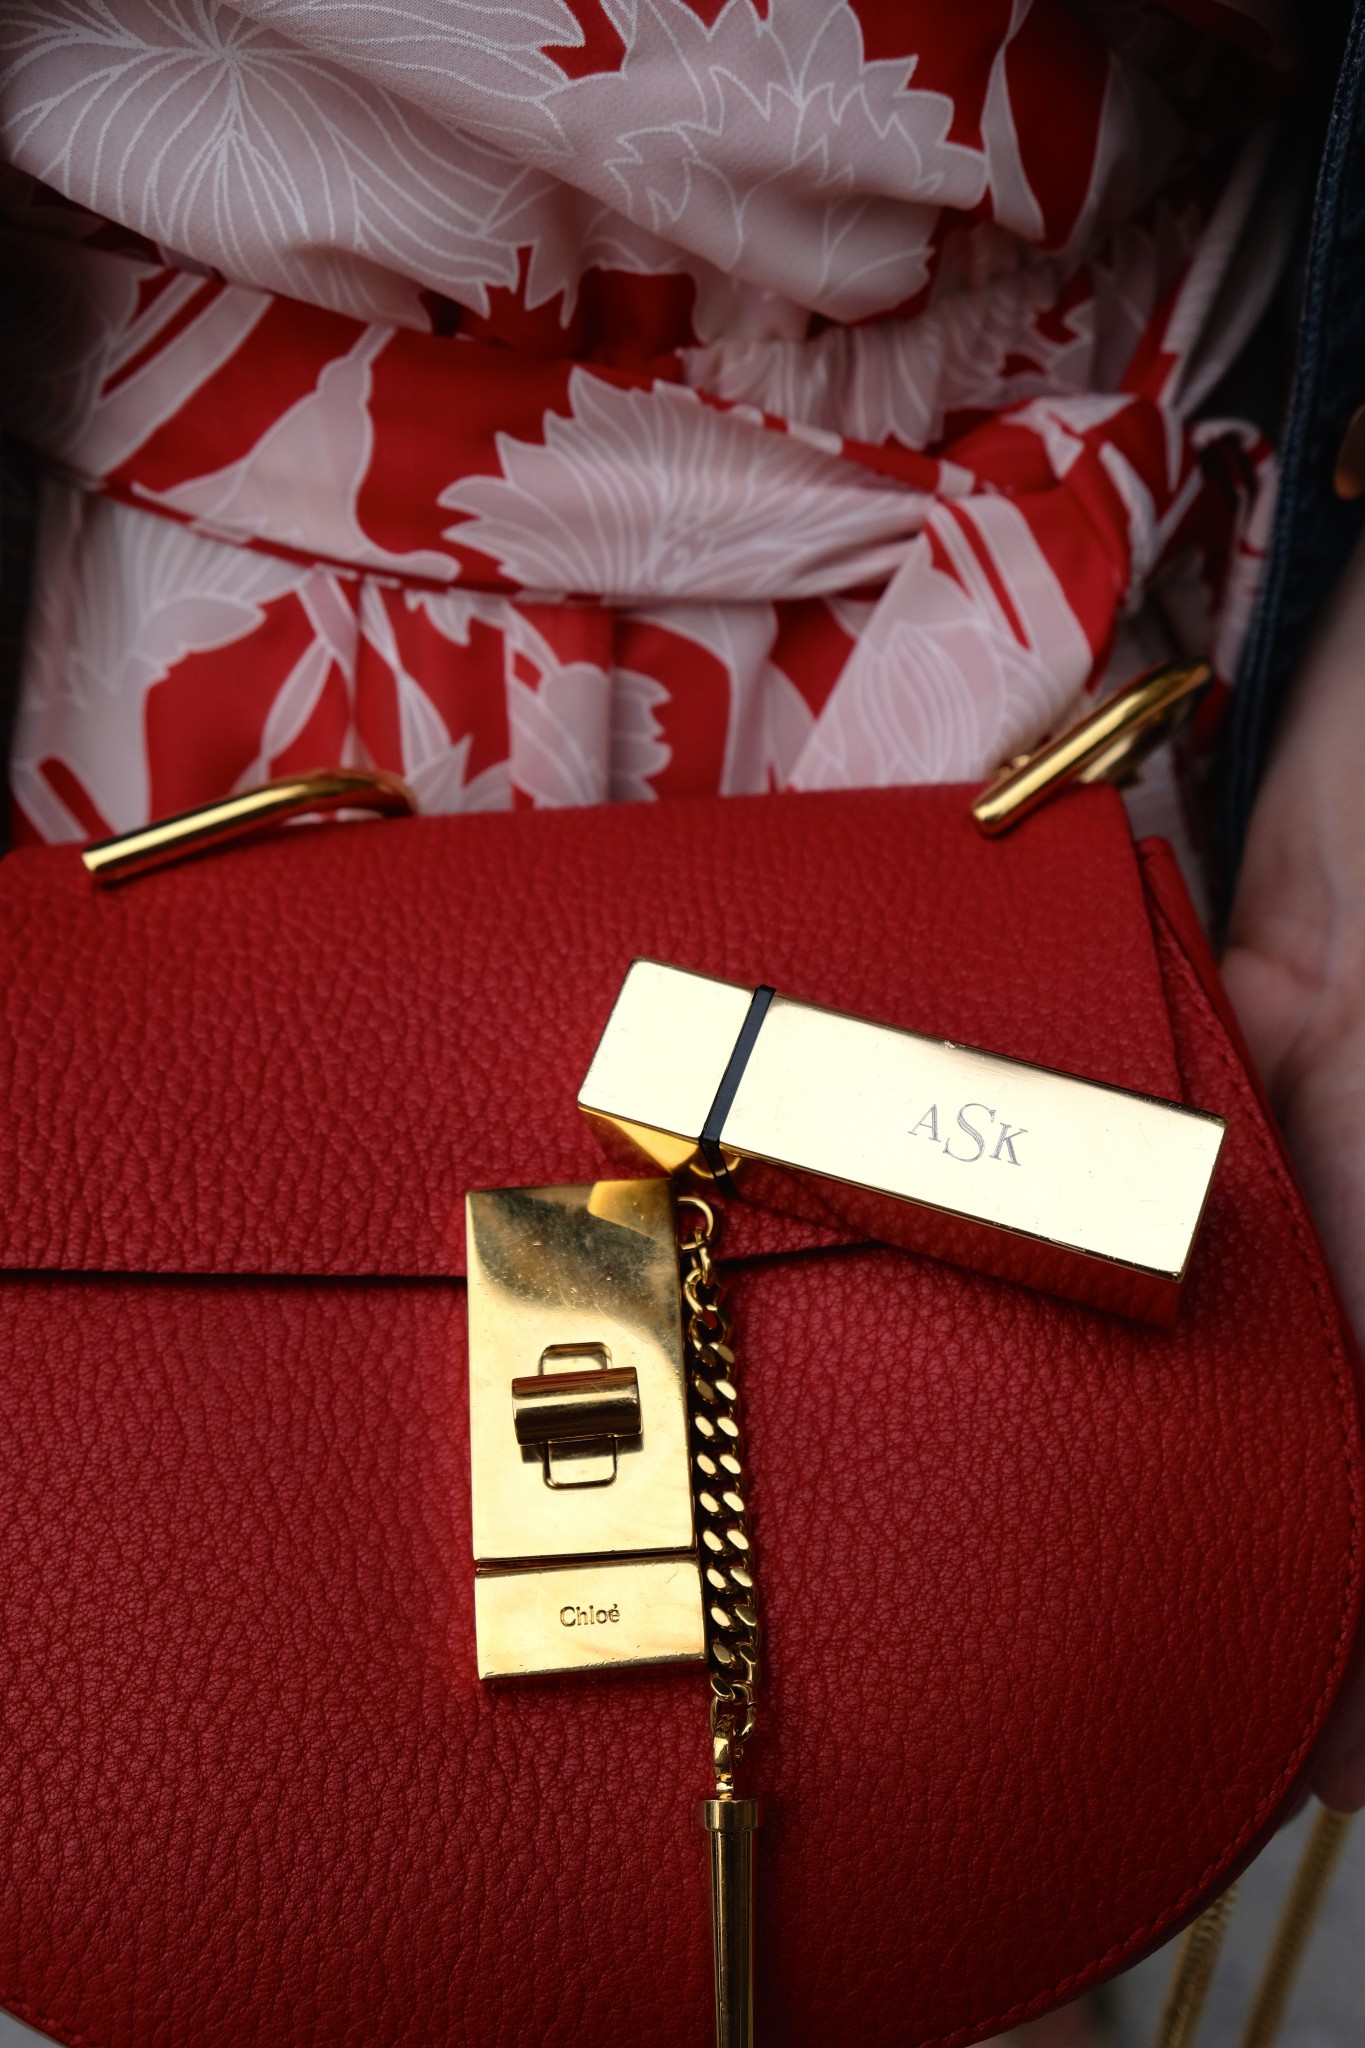 chloe bag, YSL lipstick, the-alyst.com